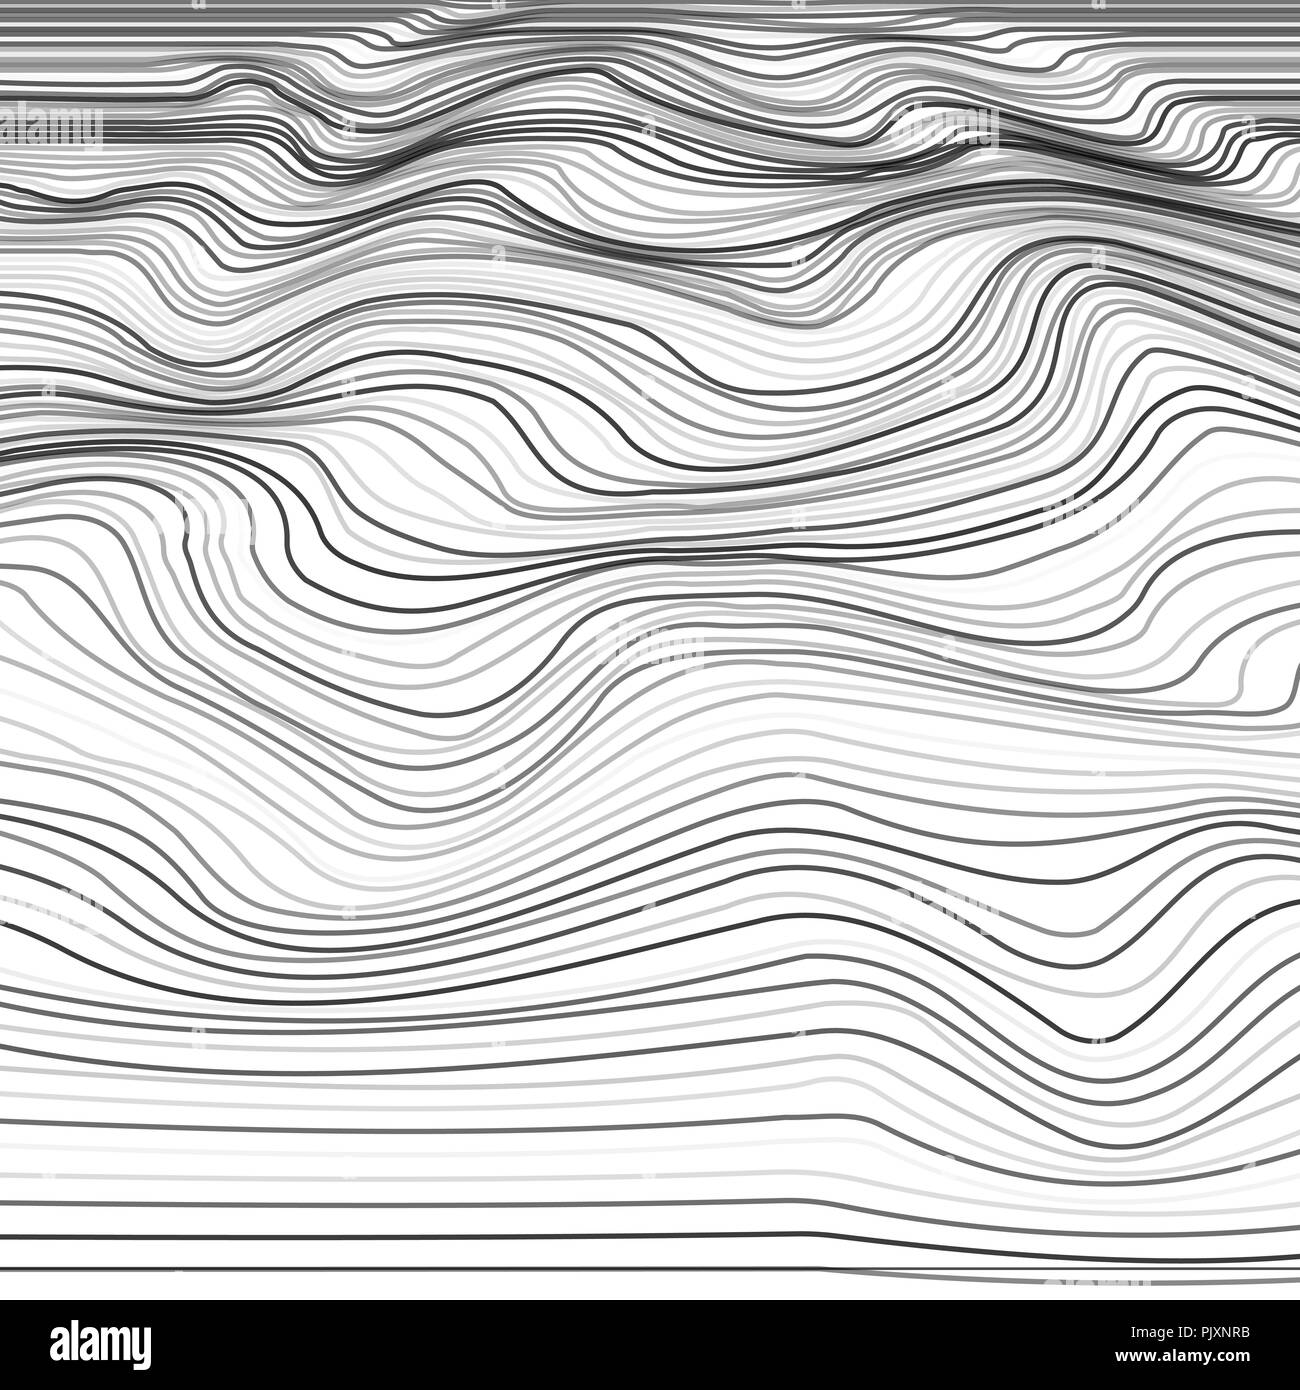 Stripe deformation background. Distorted wave monochrome texture. Abstract dynamical rippled surface from line. Vector illustration - Stock Vector